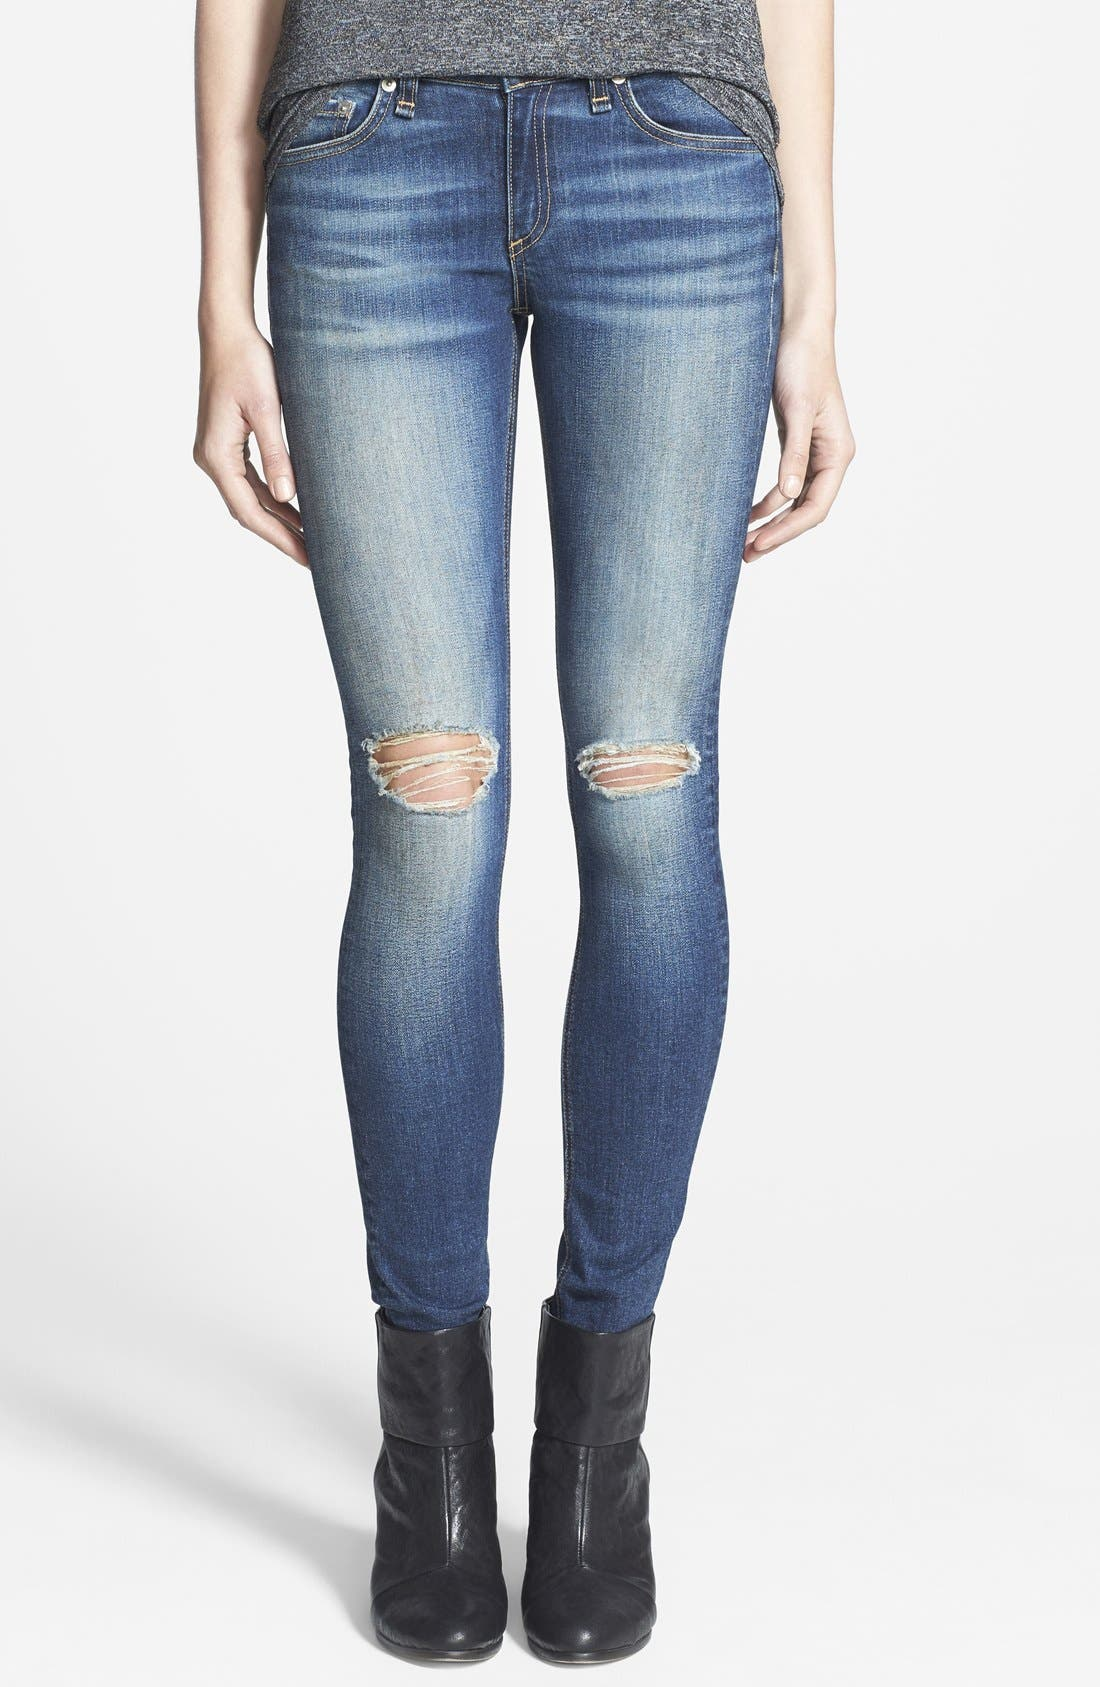 Alternate Image 1 Selected - rag & bone/JEAN 'The Skinny' Stretch Jeans (Pacifico)